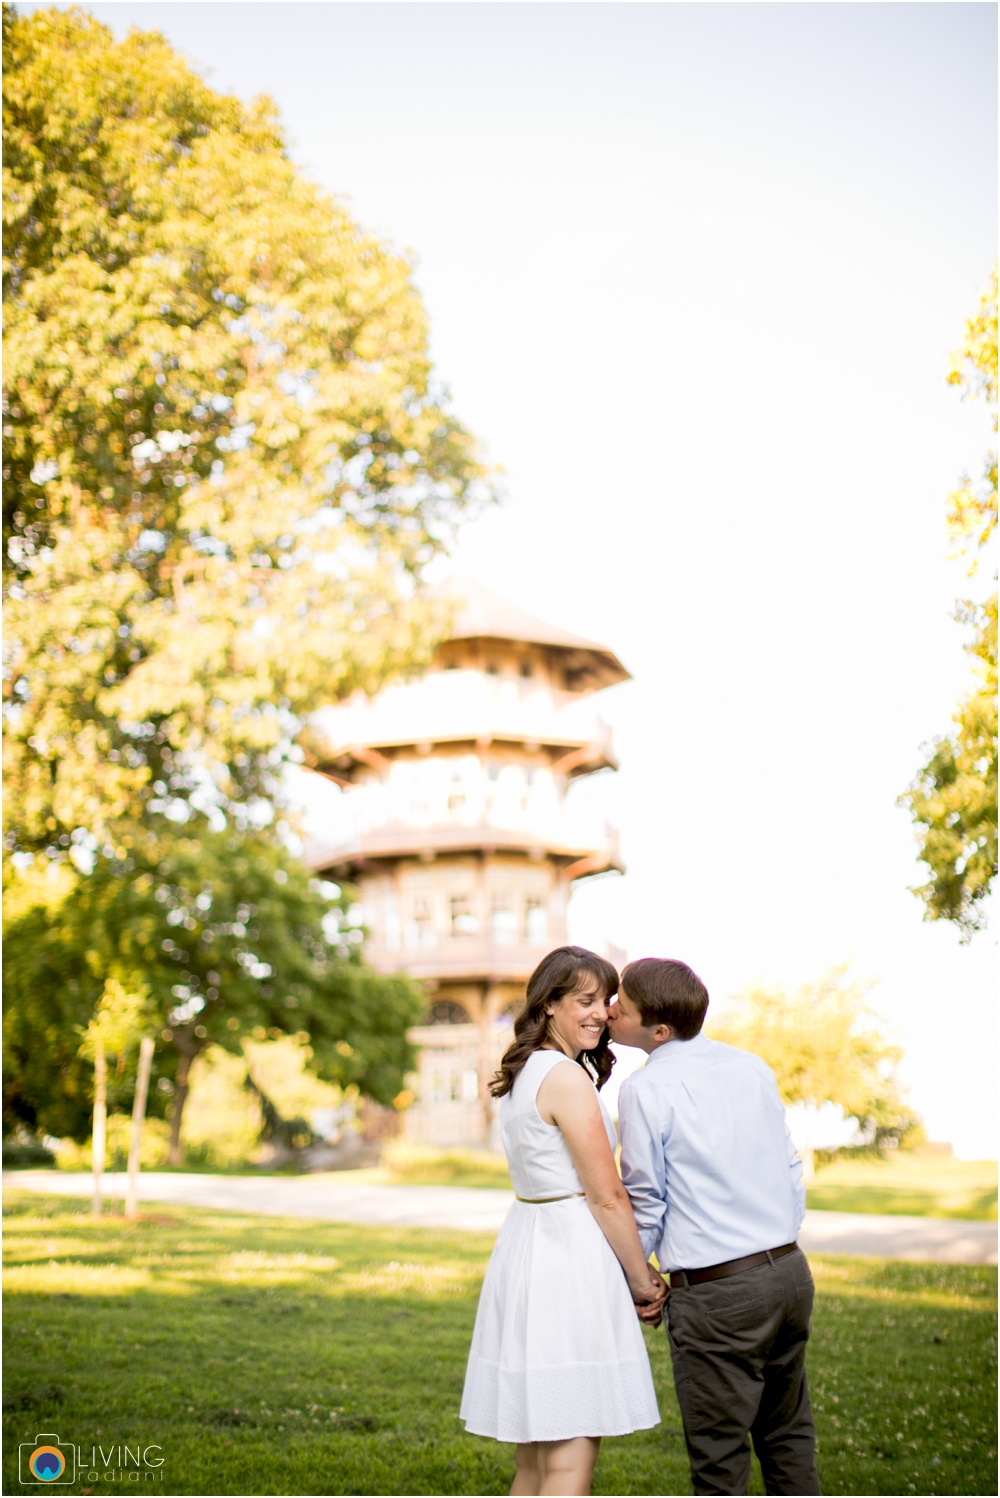 eva-dave-engaged-patterson-park-baltimore-downtown-living-radiant-photography-photos_0019.jpg